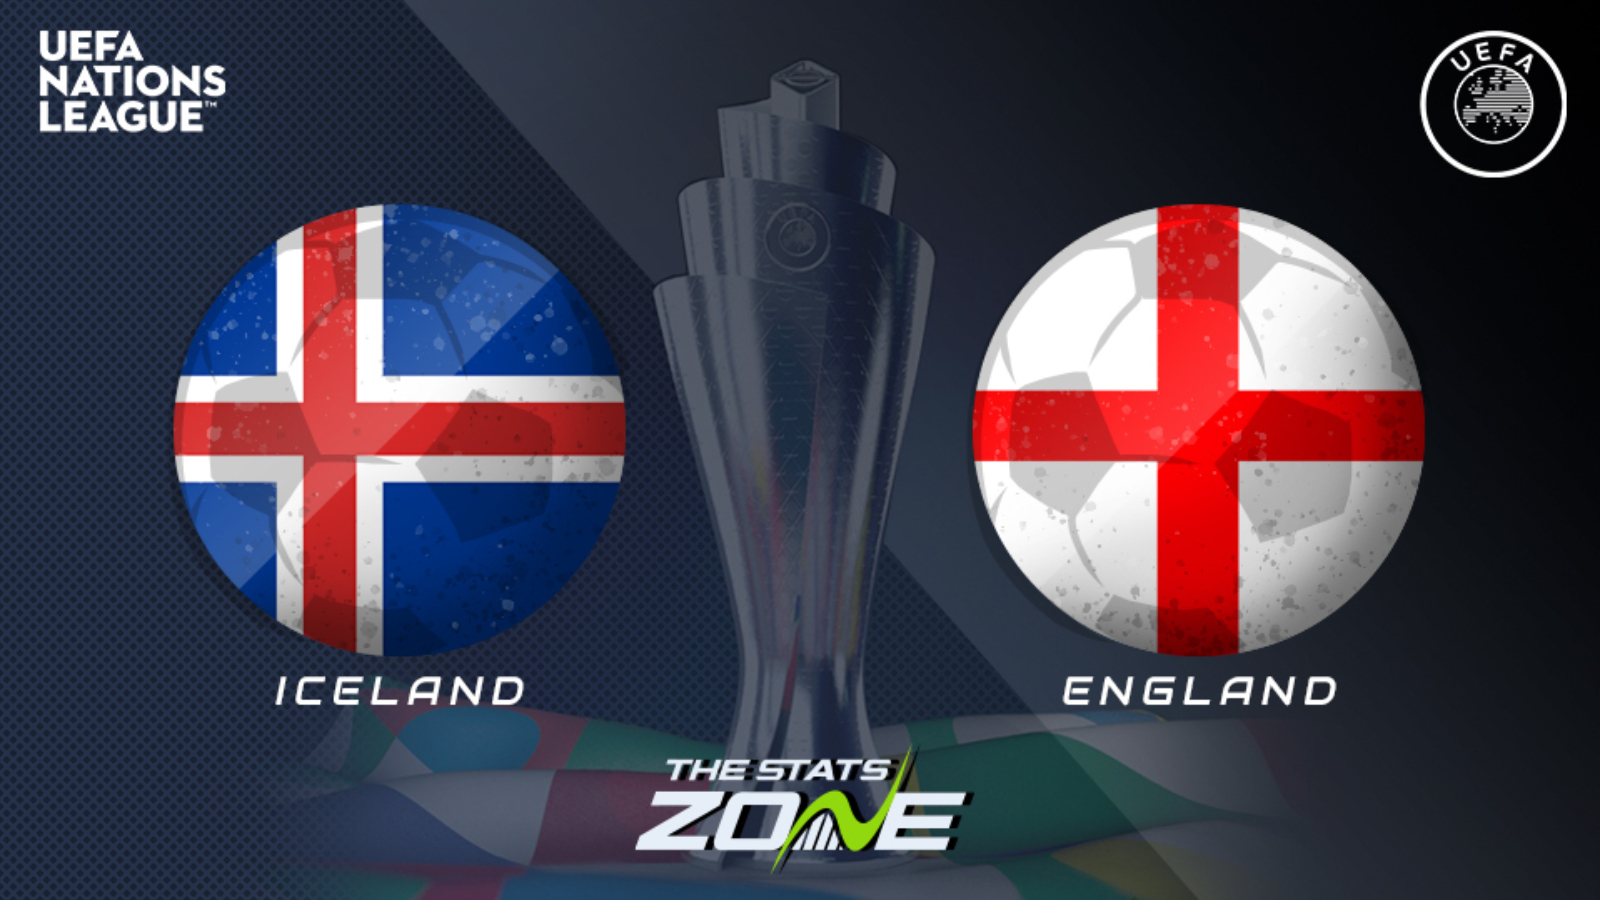 2020 21 Uefa Nations League Iceland Vs England Preview Prediction The Stats Zone